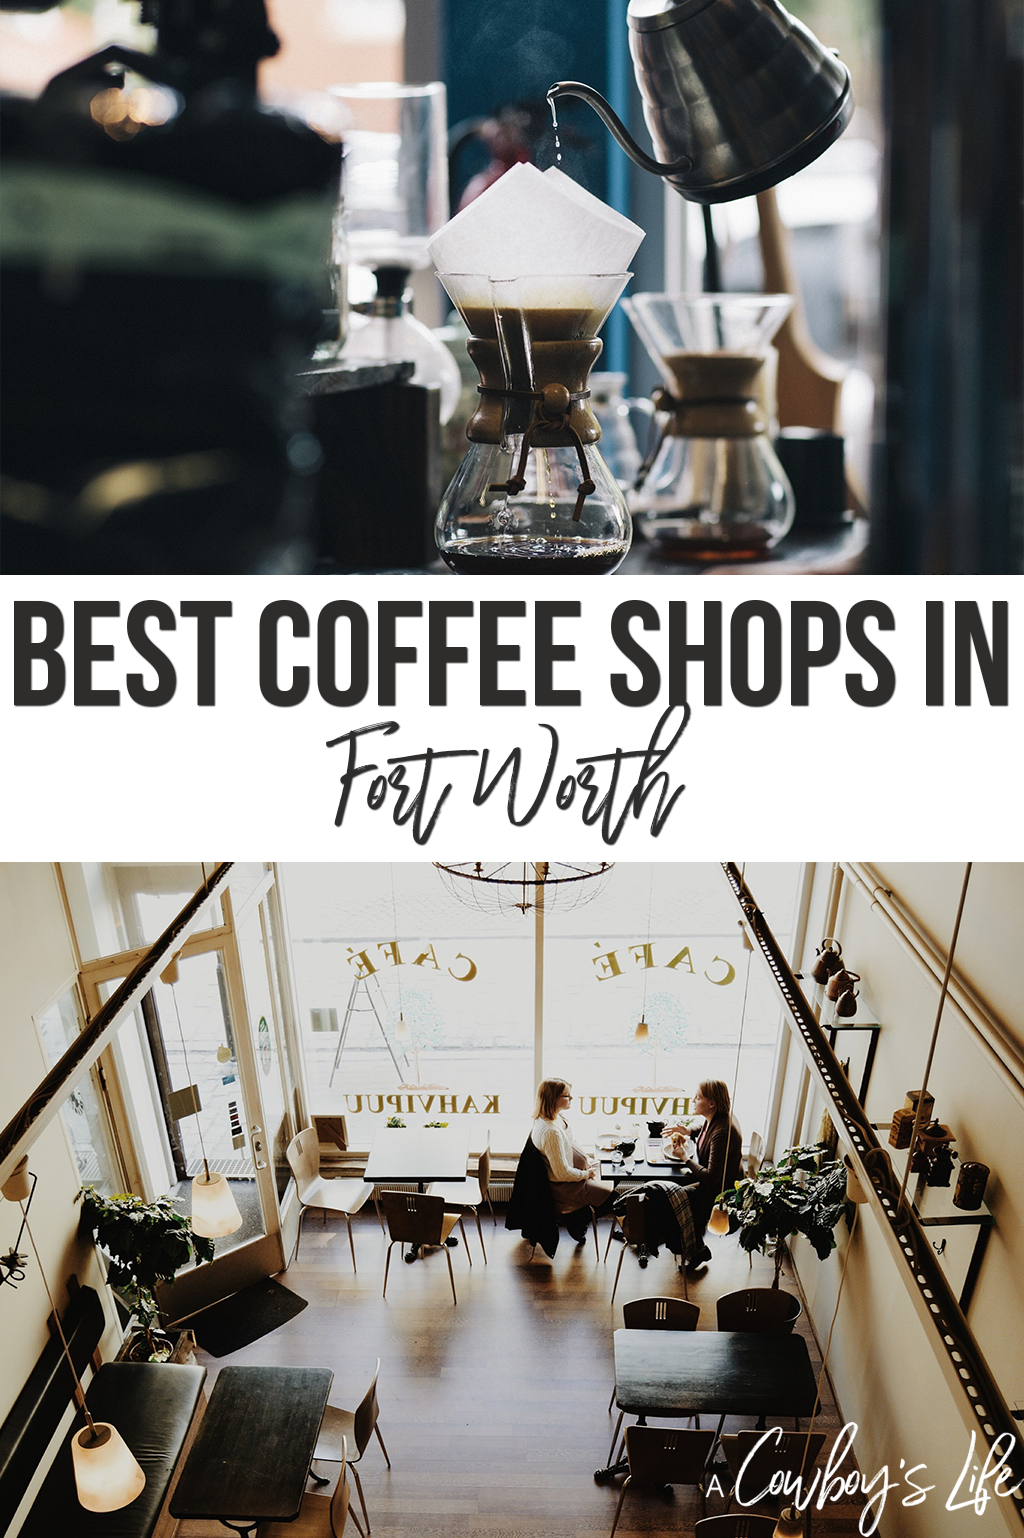 Best Coffee Shops in Fort Worth